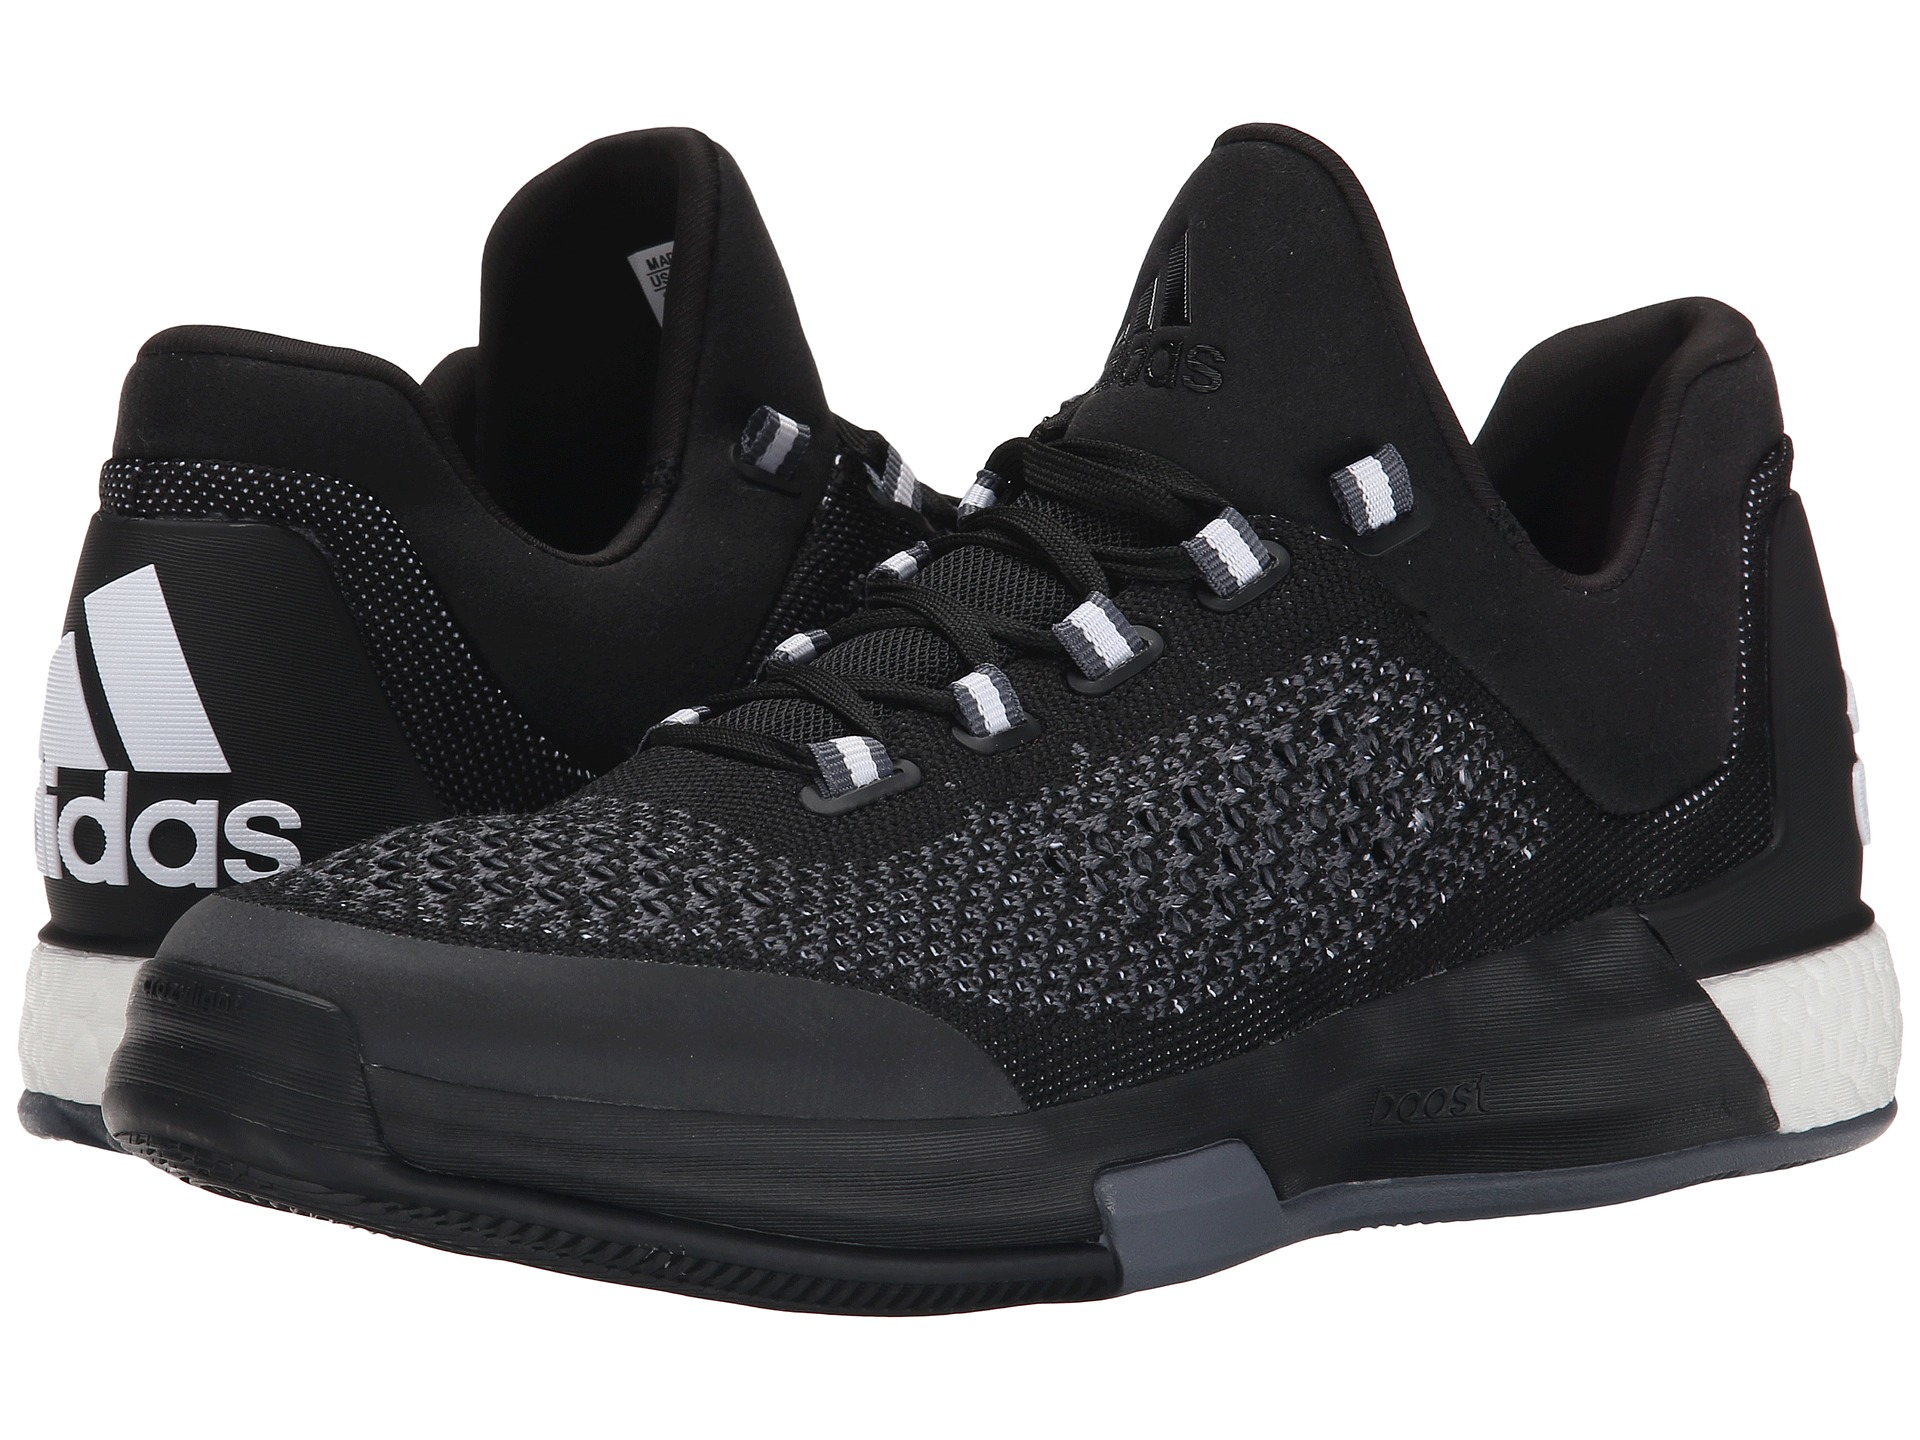 huge discount 5f143 b2542 cheapest adidas 2015 crazylight boost primeknit strap black basketball shoes  s85571 m13 b4a45 0862f  shopping lyst adidas 2015 crazylight boost primeknit  in ...